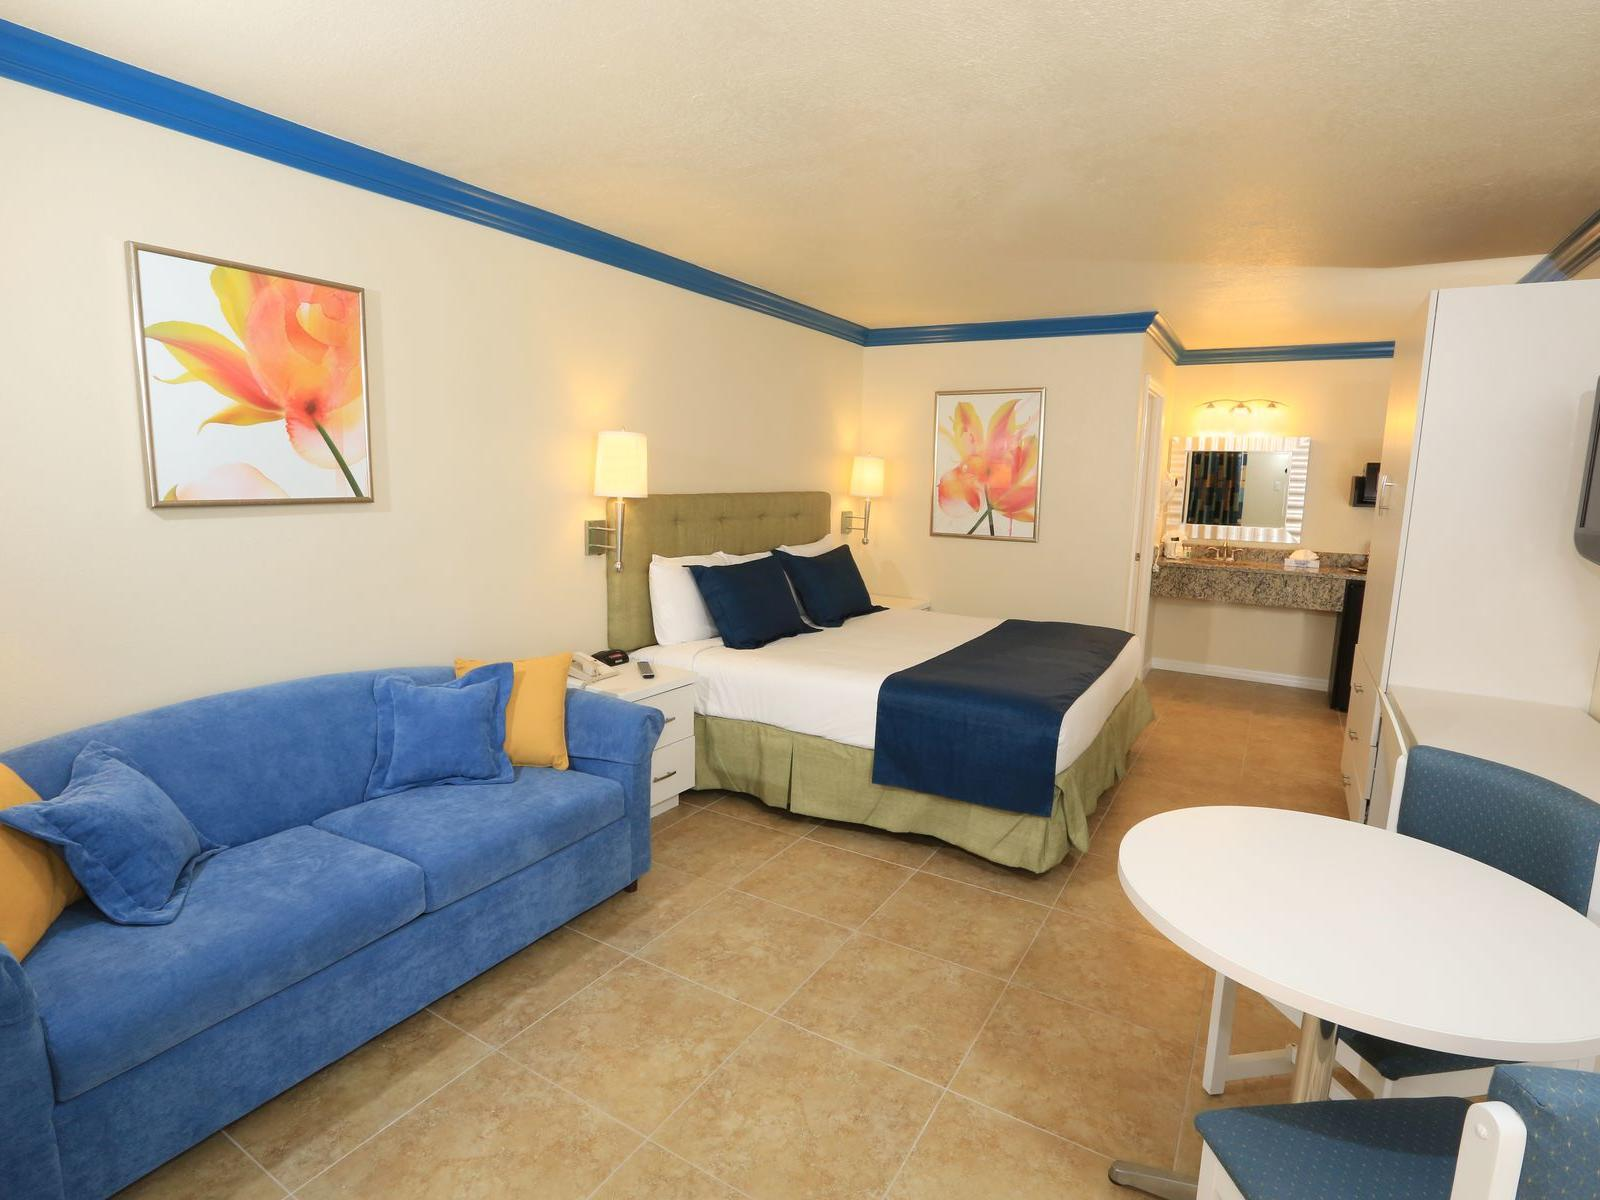 king bed in hotel suite with blue couch